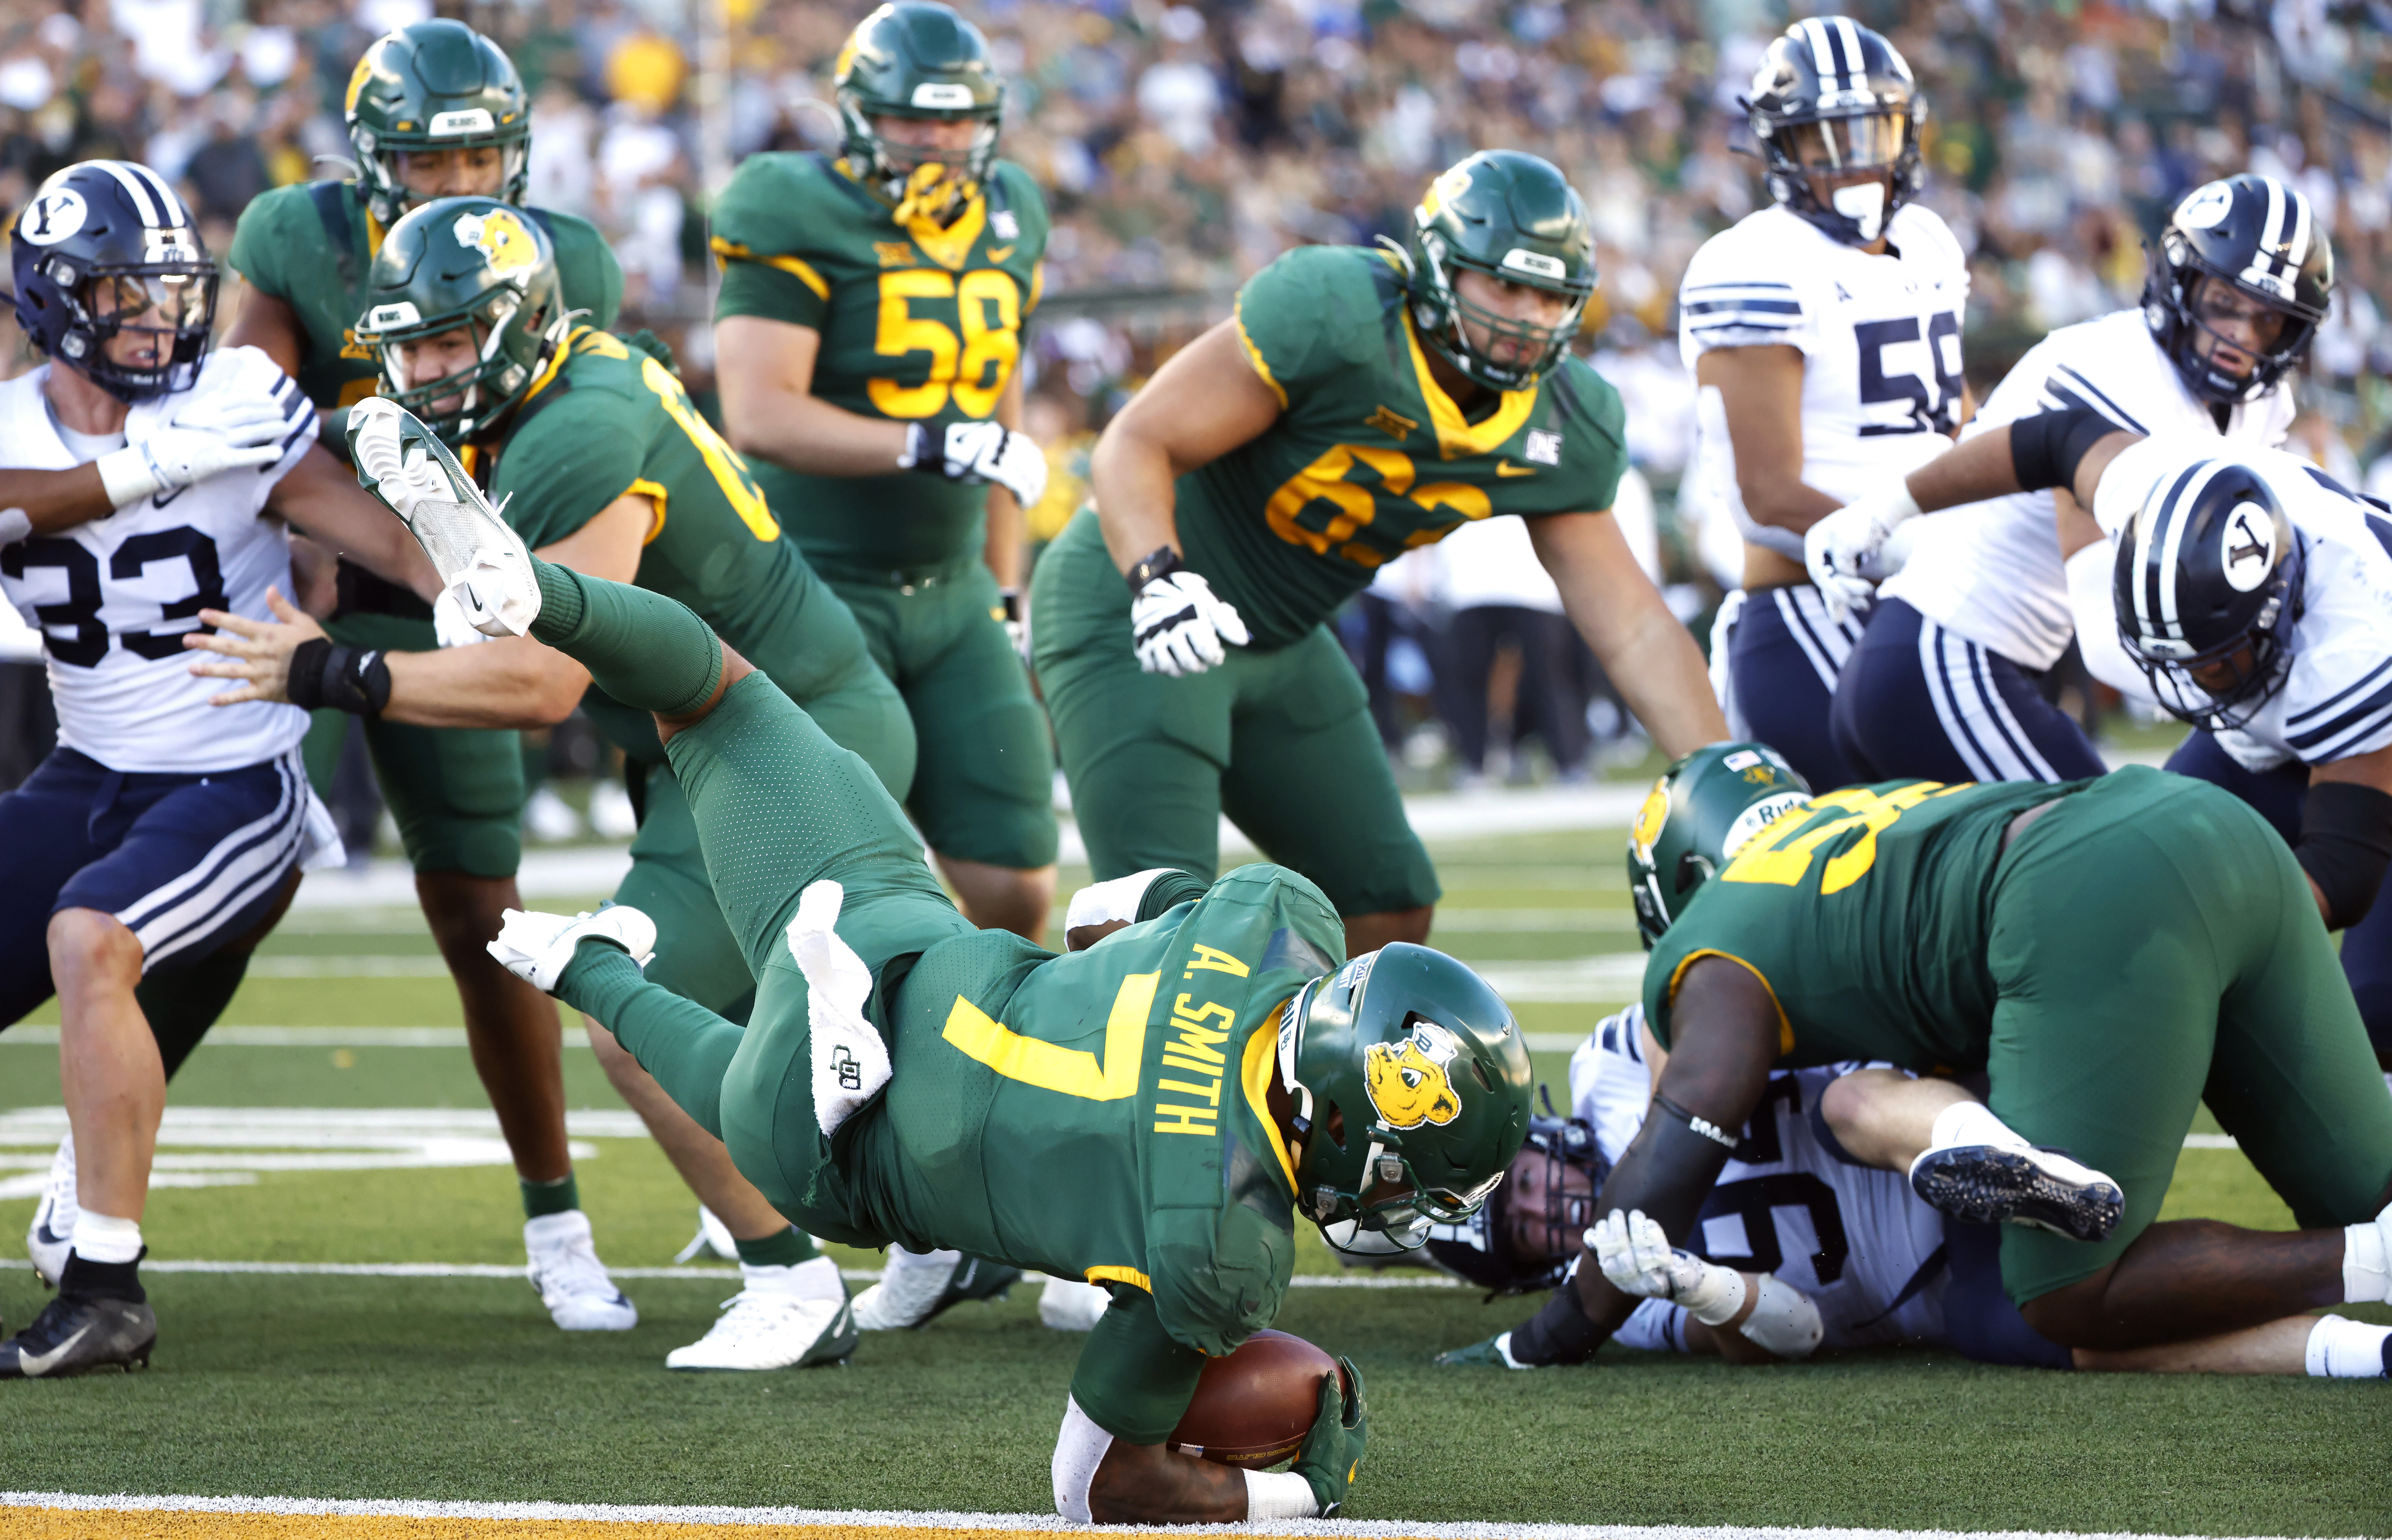 Baylor running back Abram Smith (7) dives for a touchdown against BYU